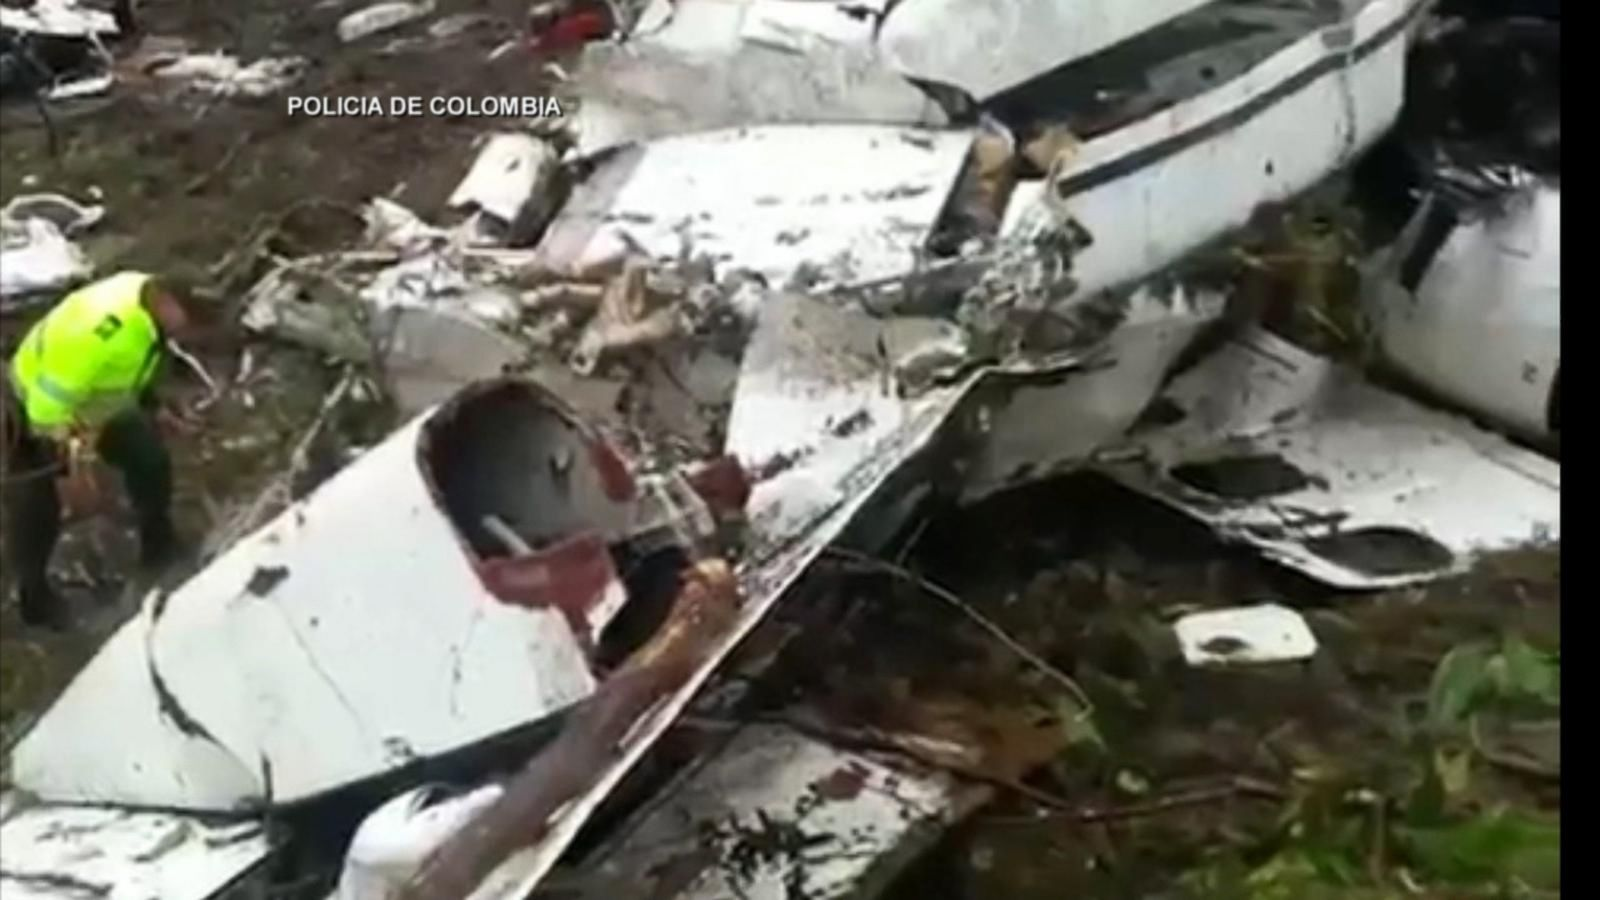 VIDEO: Fuel Shortage Could Be to Blame for Fatal Plane Crash